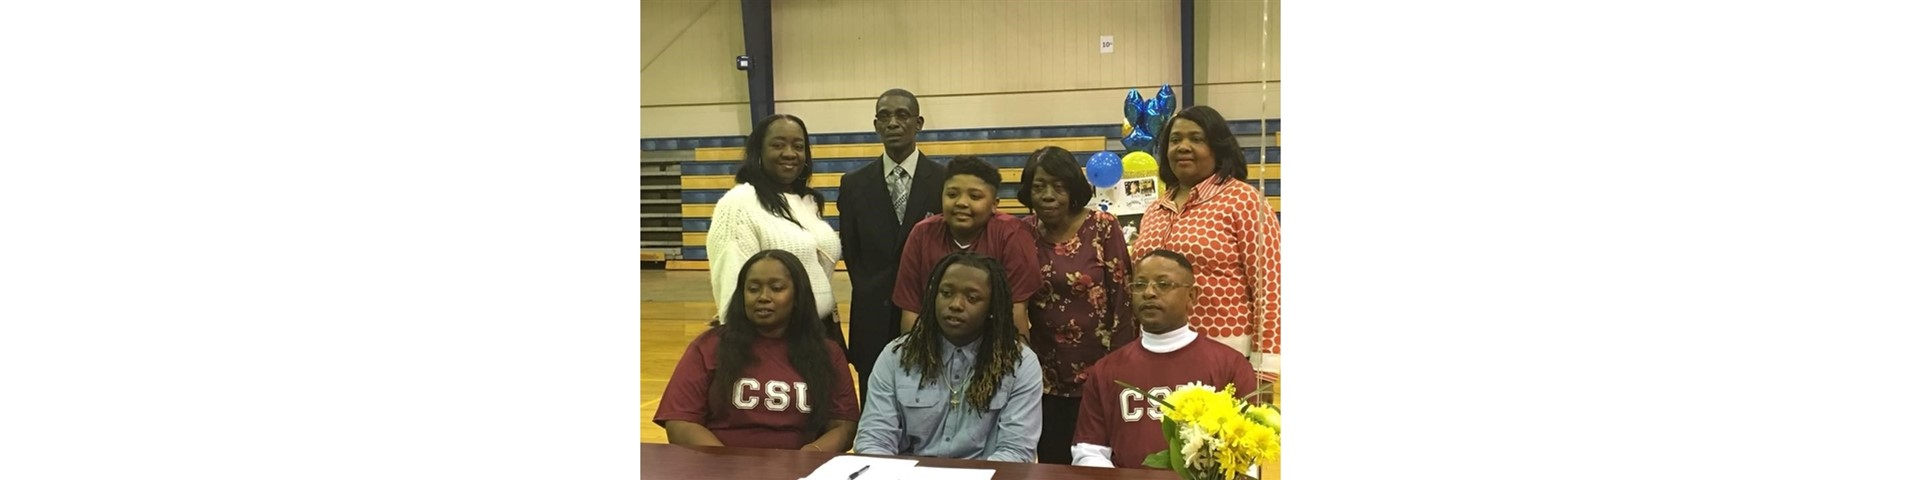 Keith Senior Ty'Quarius Murray will play football at Central State University in Wilberforce, Ohio